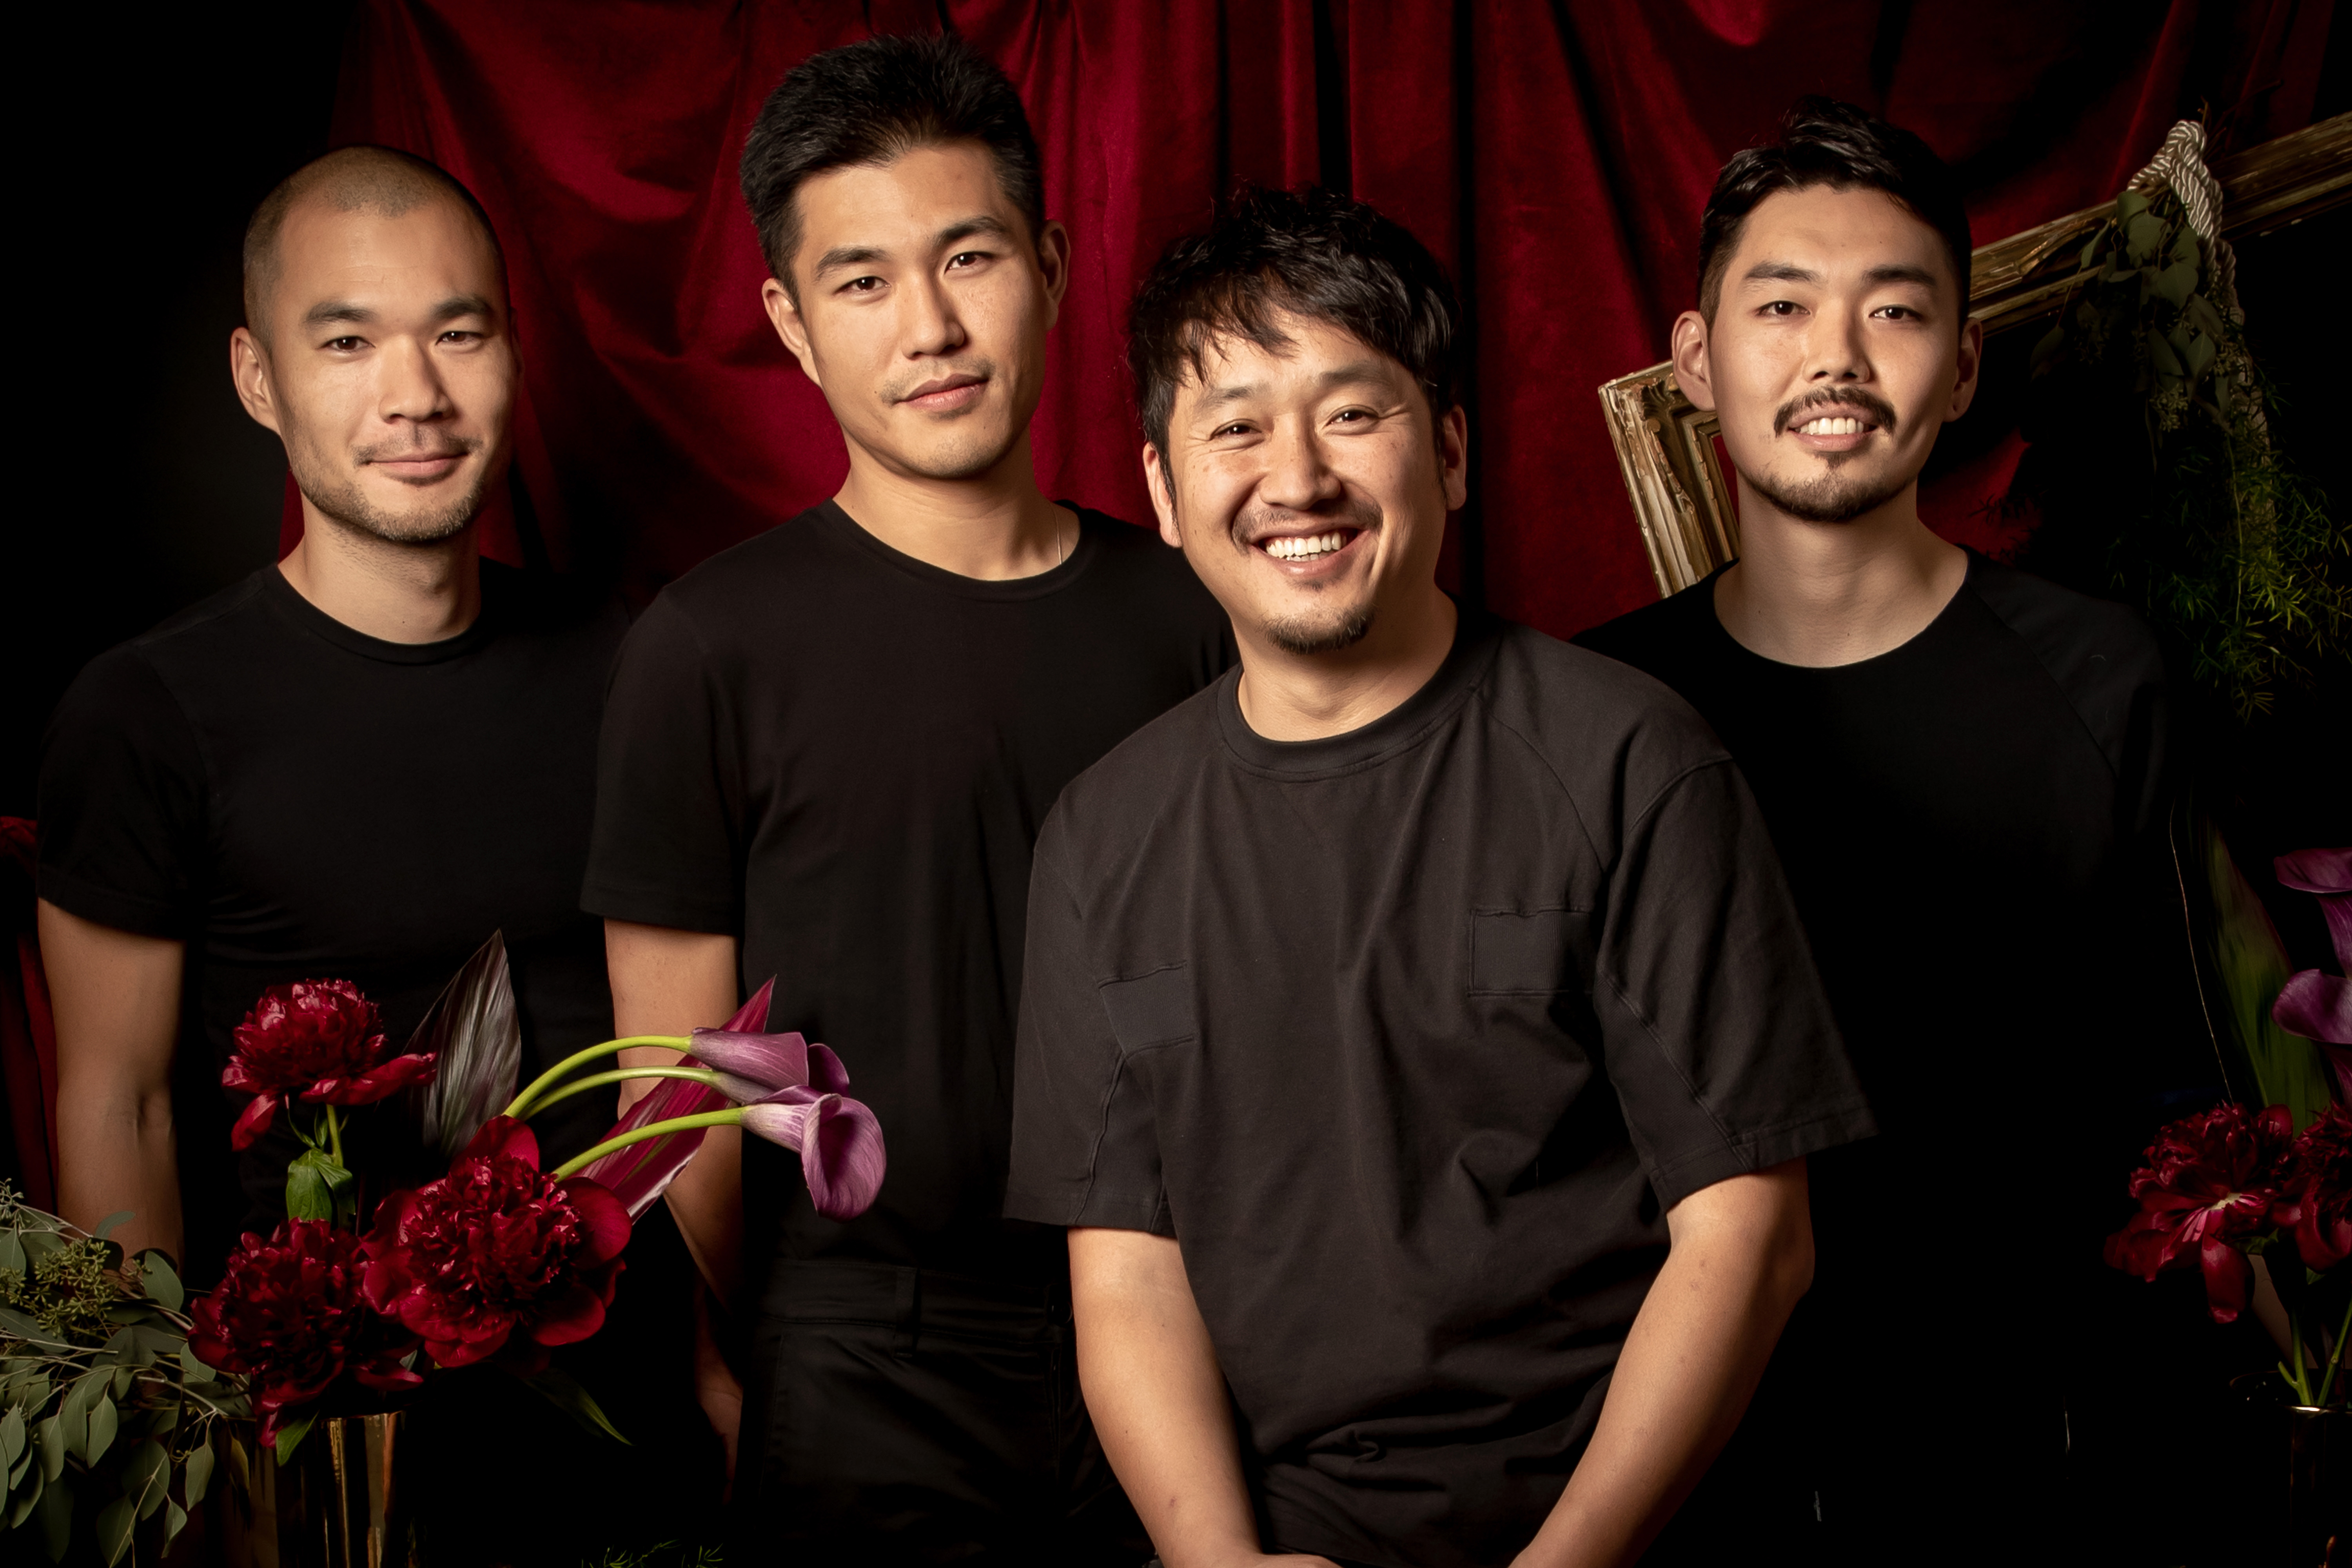 Four men pose in front of a velvet red curtain. To the left and right of the group there are red flowers.